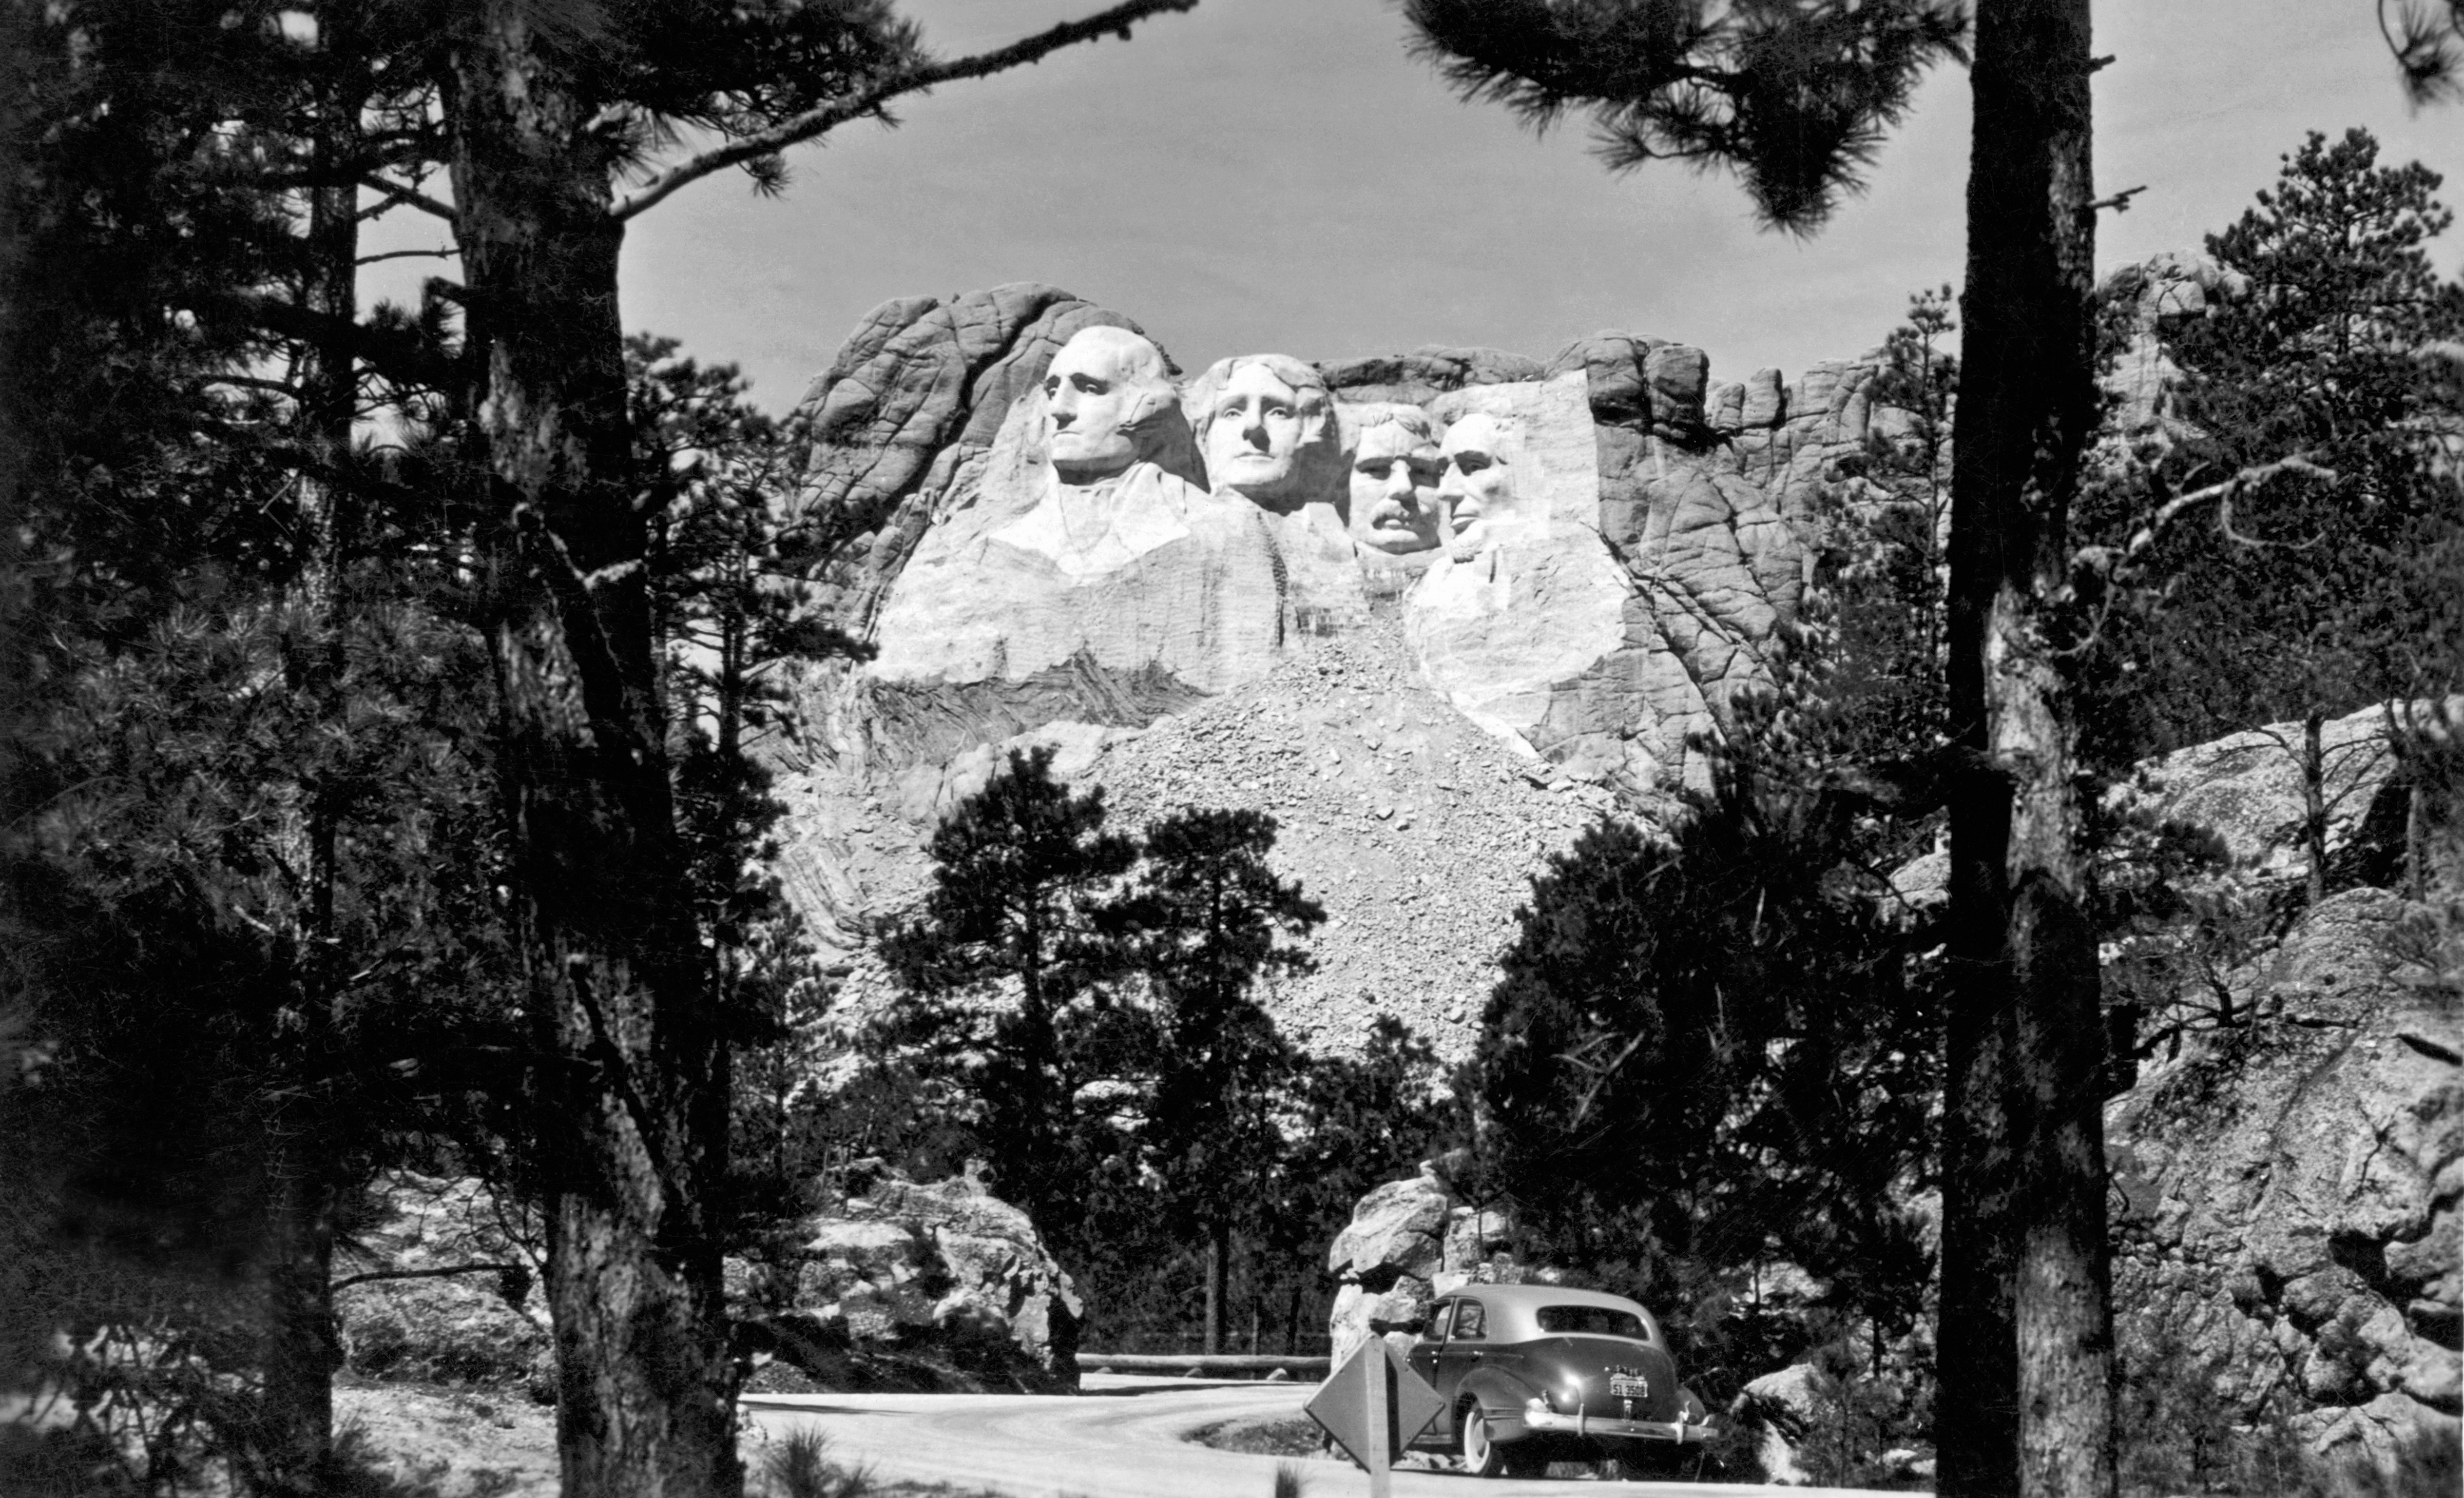 The finished Mount Rushmore sculpture by Guzon Borglum, in the Black Hills area of Keystone, S.D., circa early 1940s.